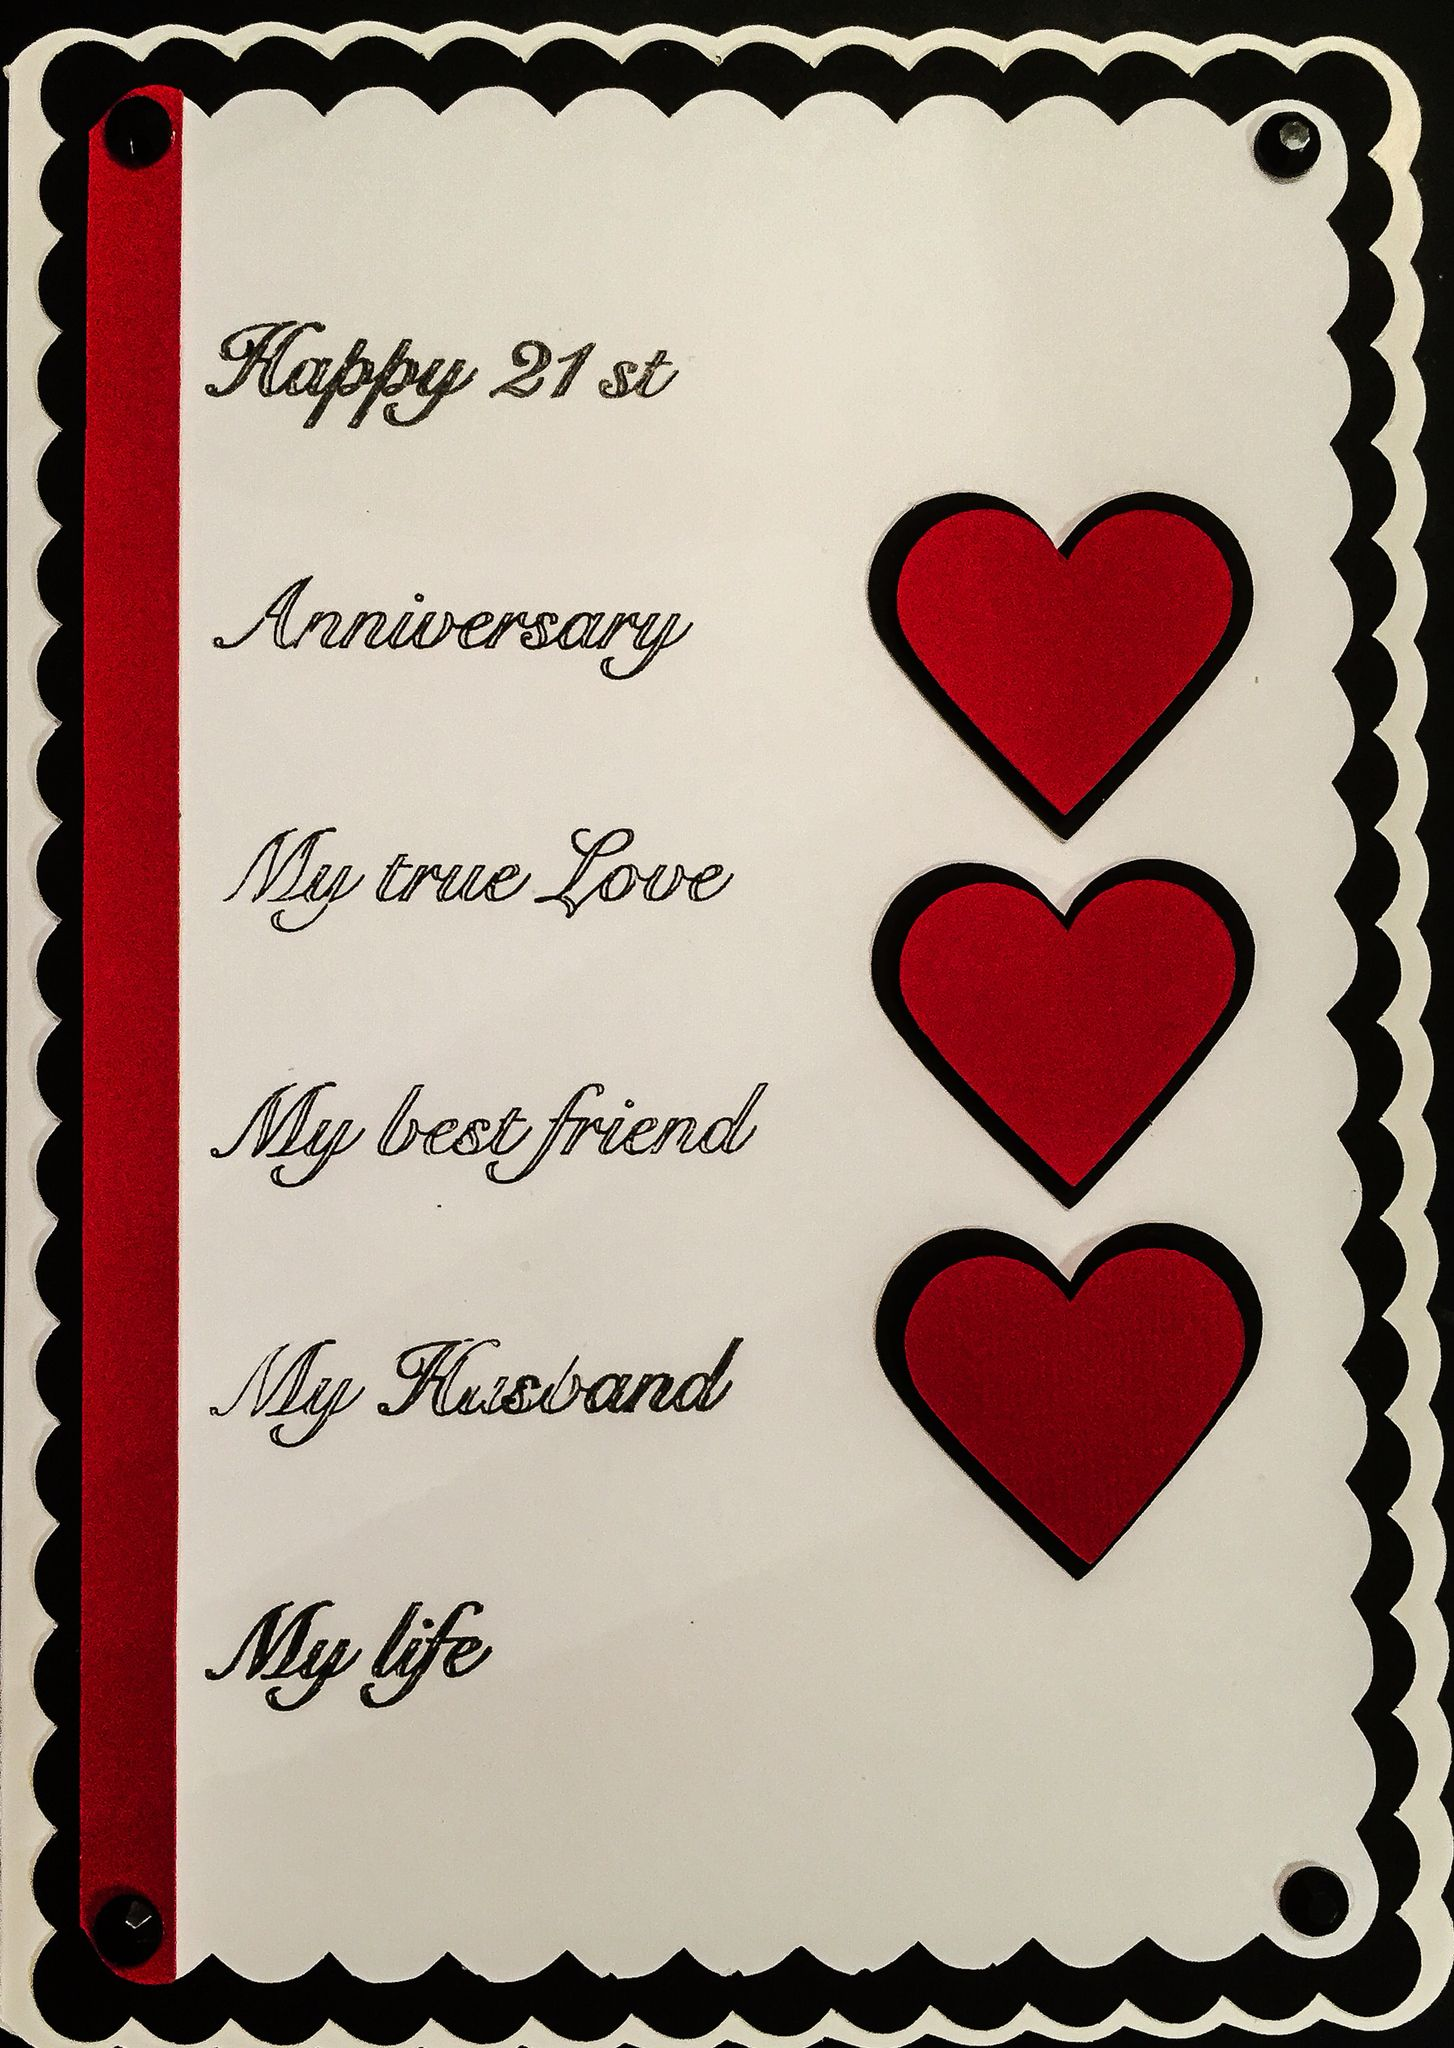 21st Wedding Anniversary.Homemade 21st Heart Wedding Anniversary Husband Card Cards Anniv